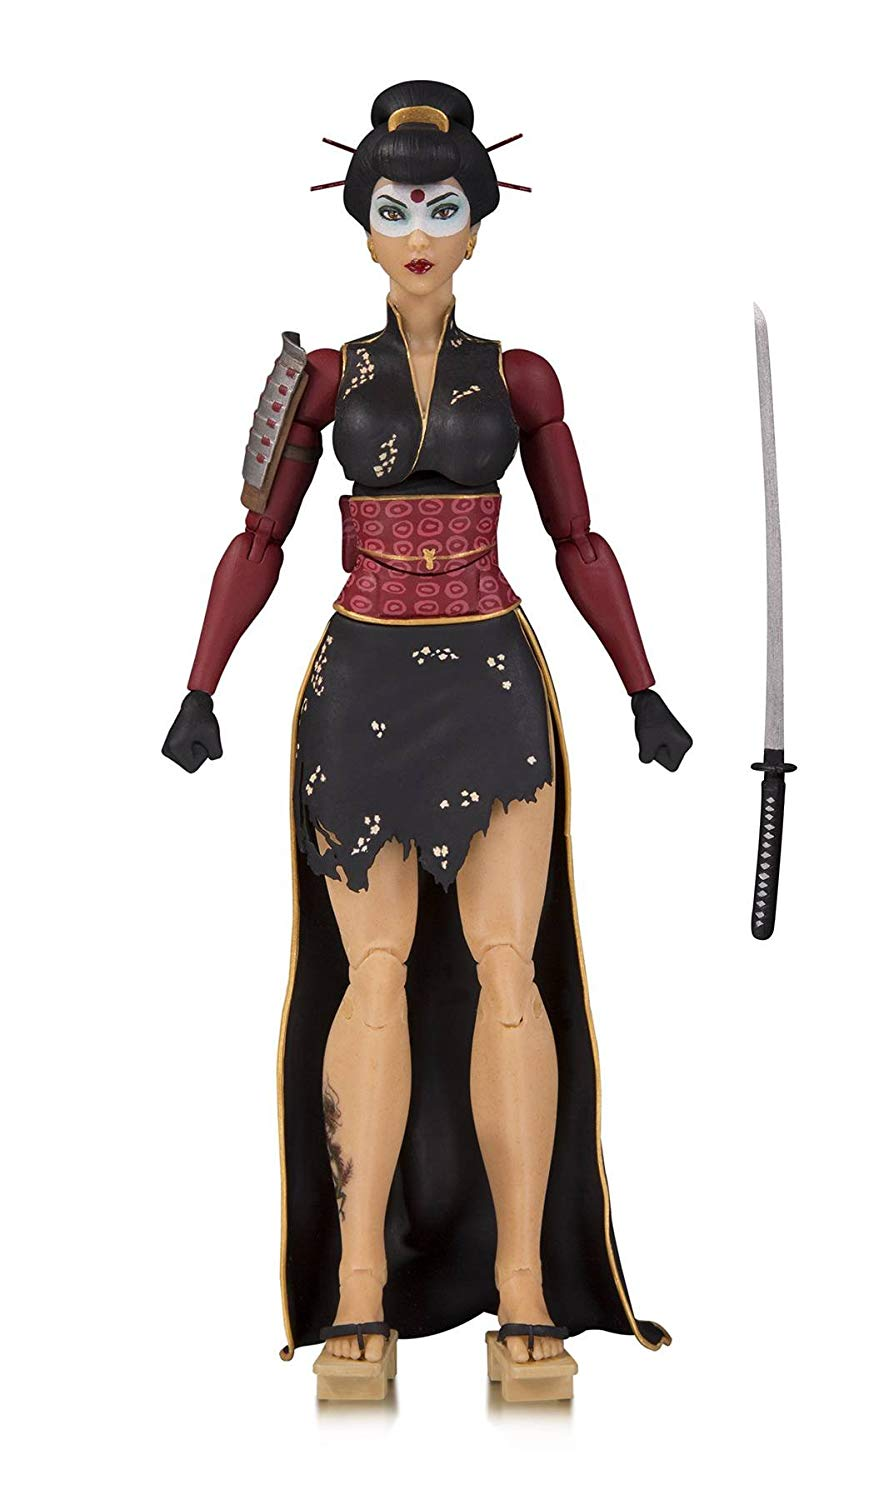 DC Collectibles Designer Series Bombshells by Ant Lucia Katana Action Figure, 7 inches